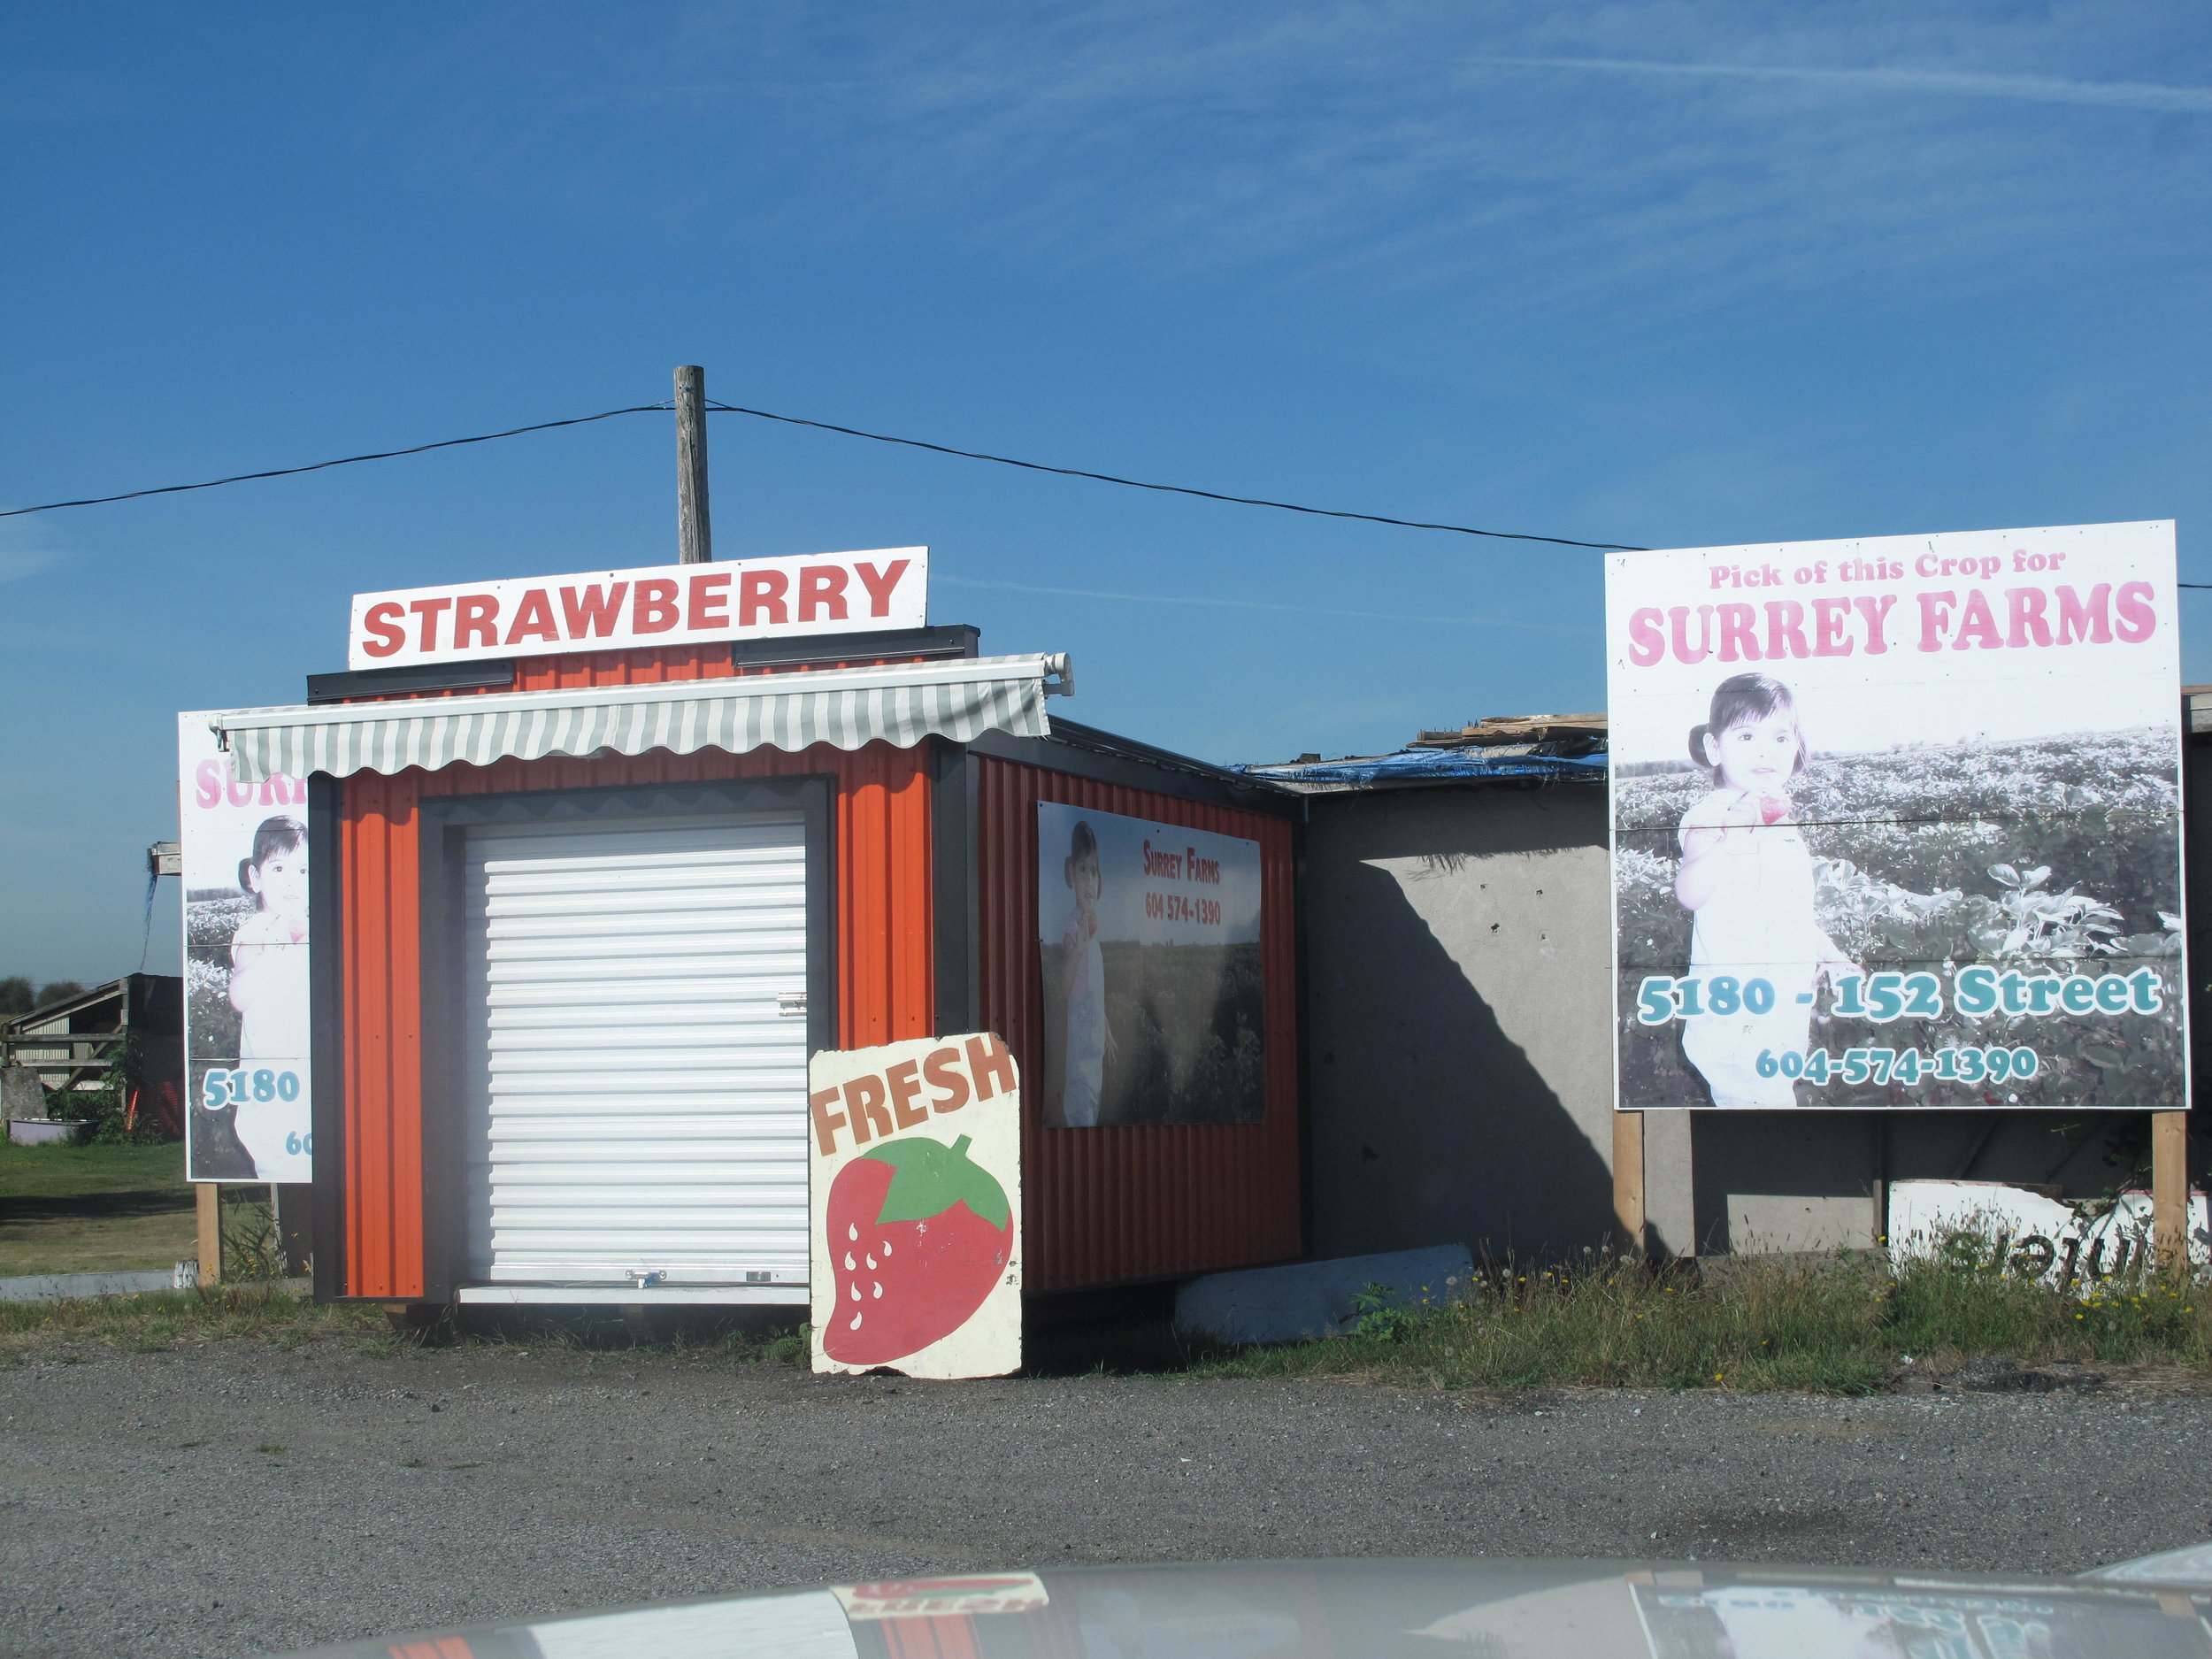 Our first market located at 4981 King George Blvd.